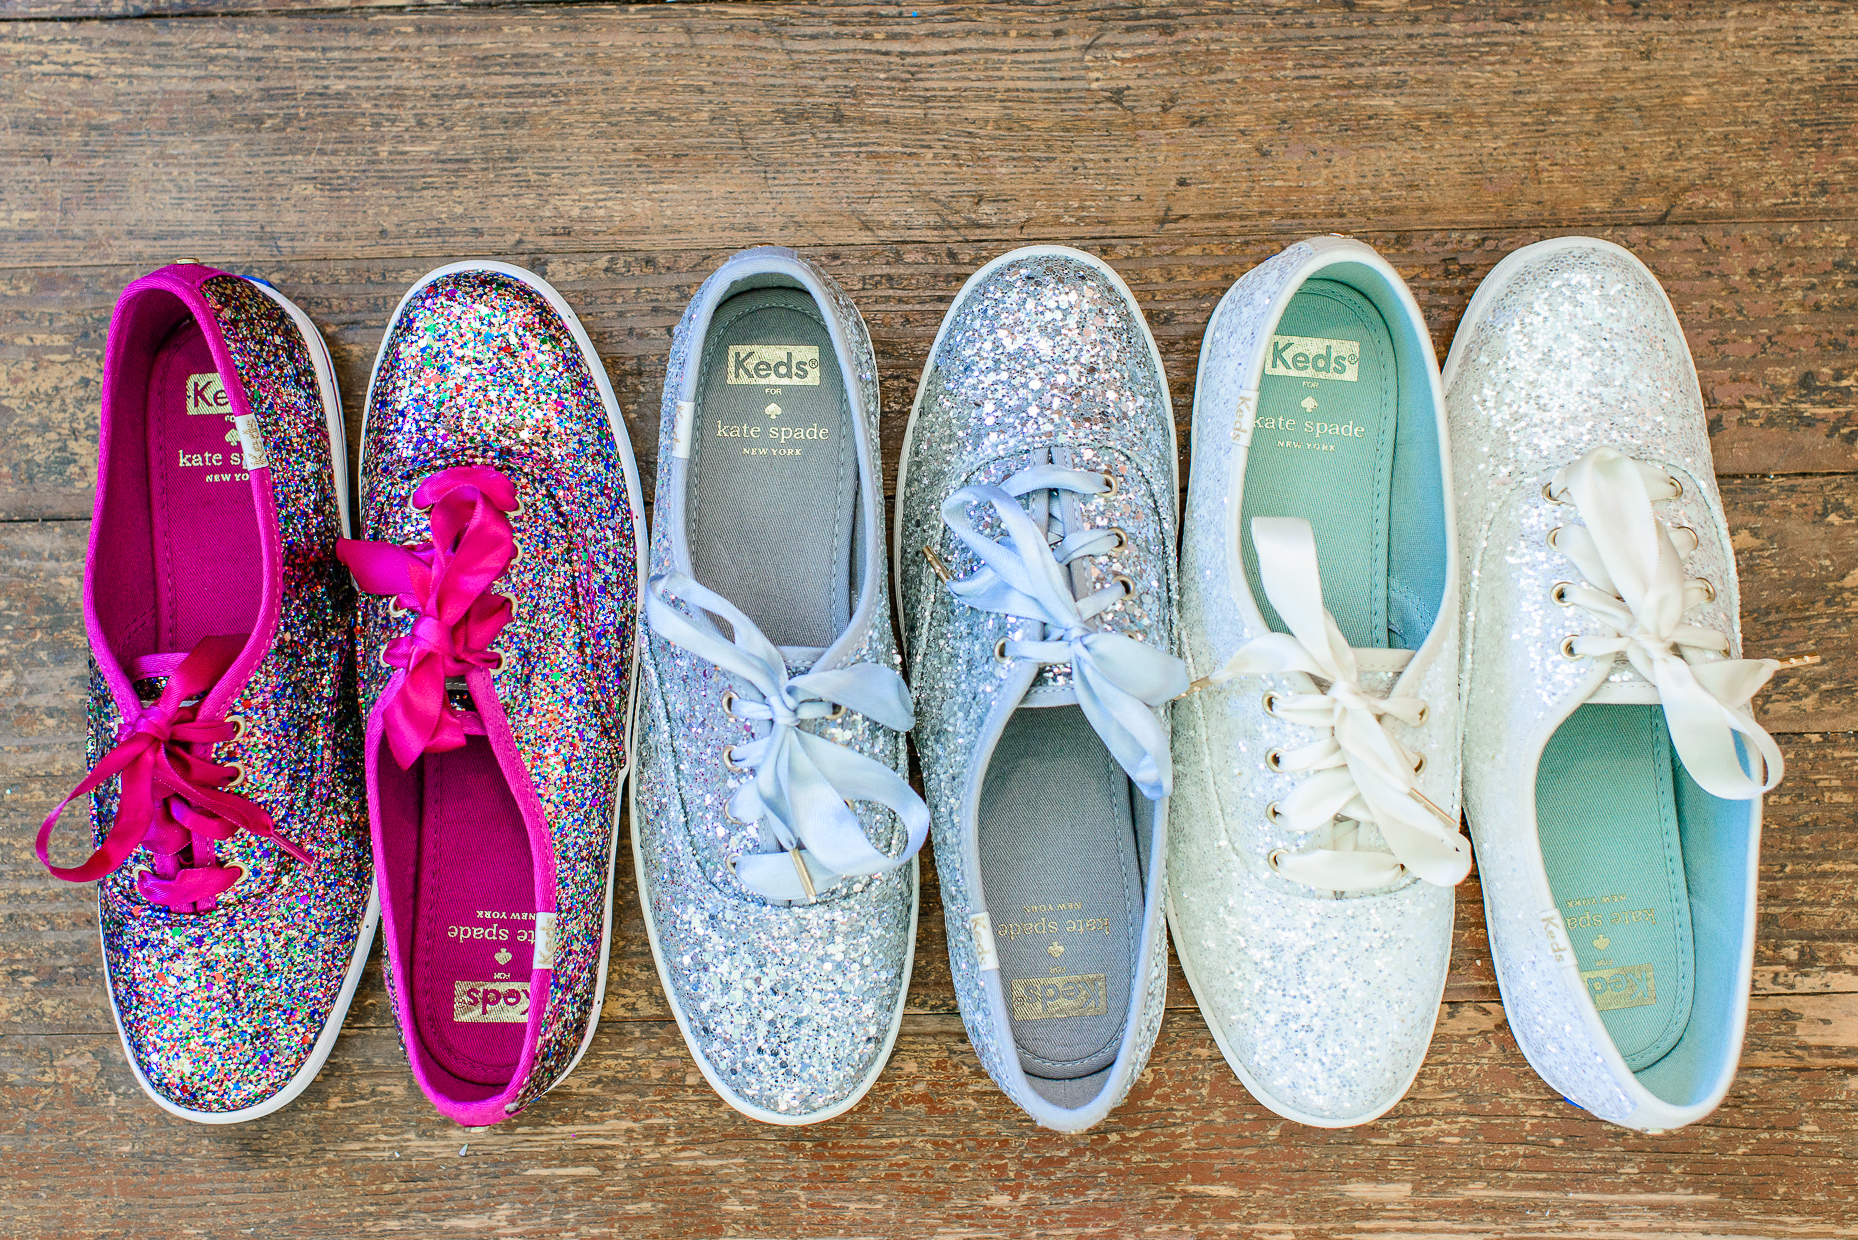 austin-wedding-photographers-shoes-bride-keds-barr-mansion